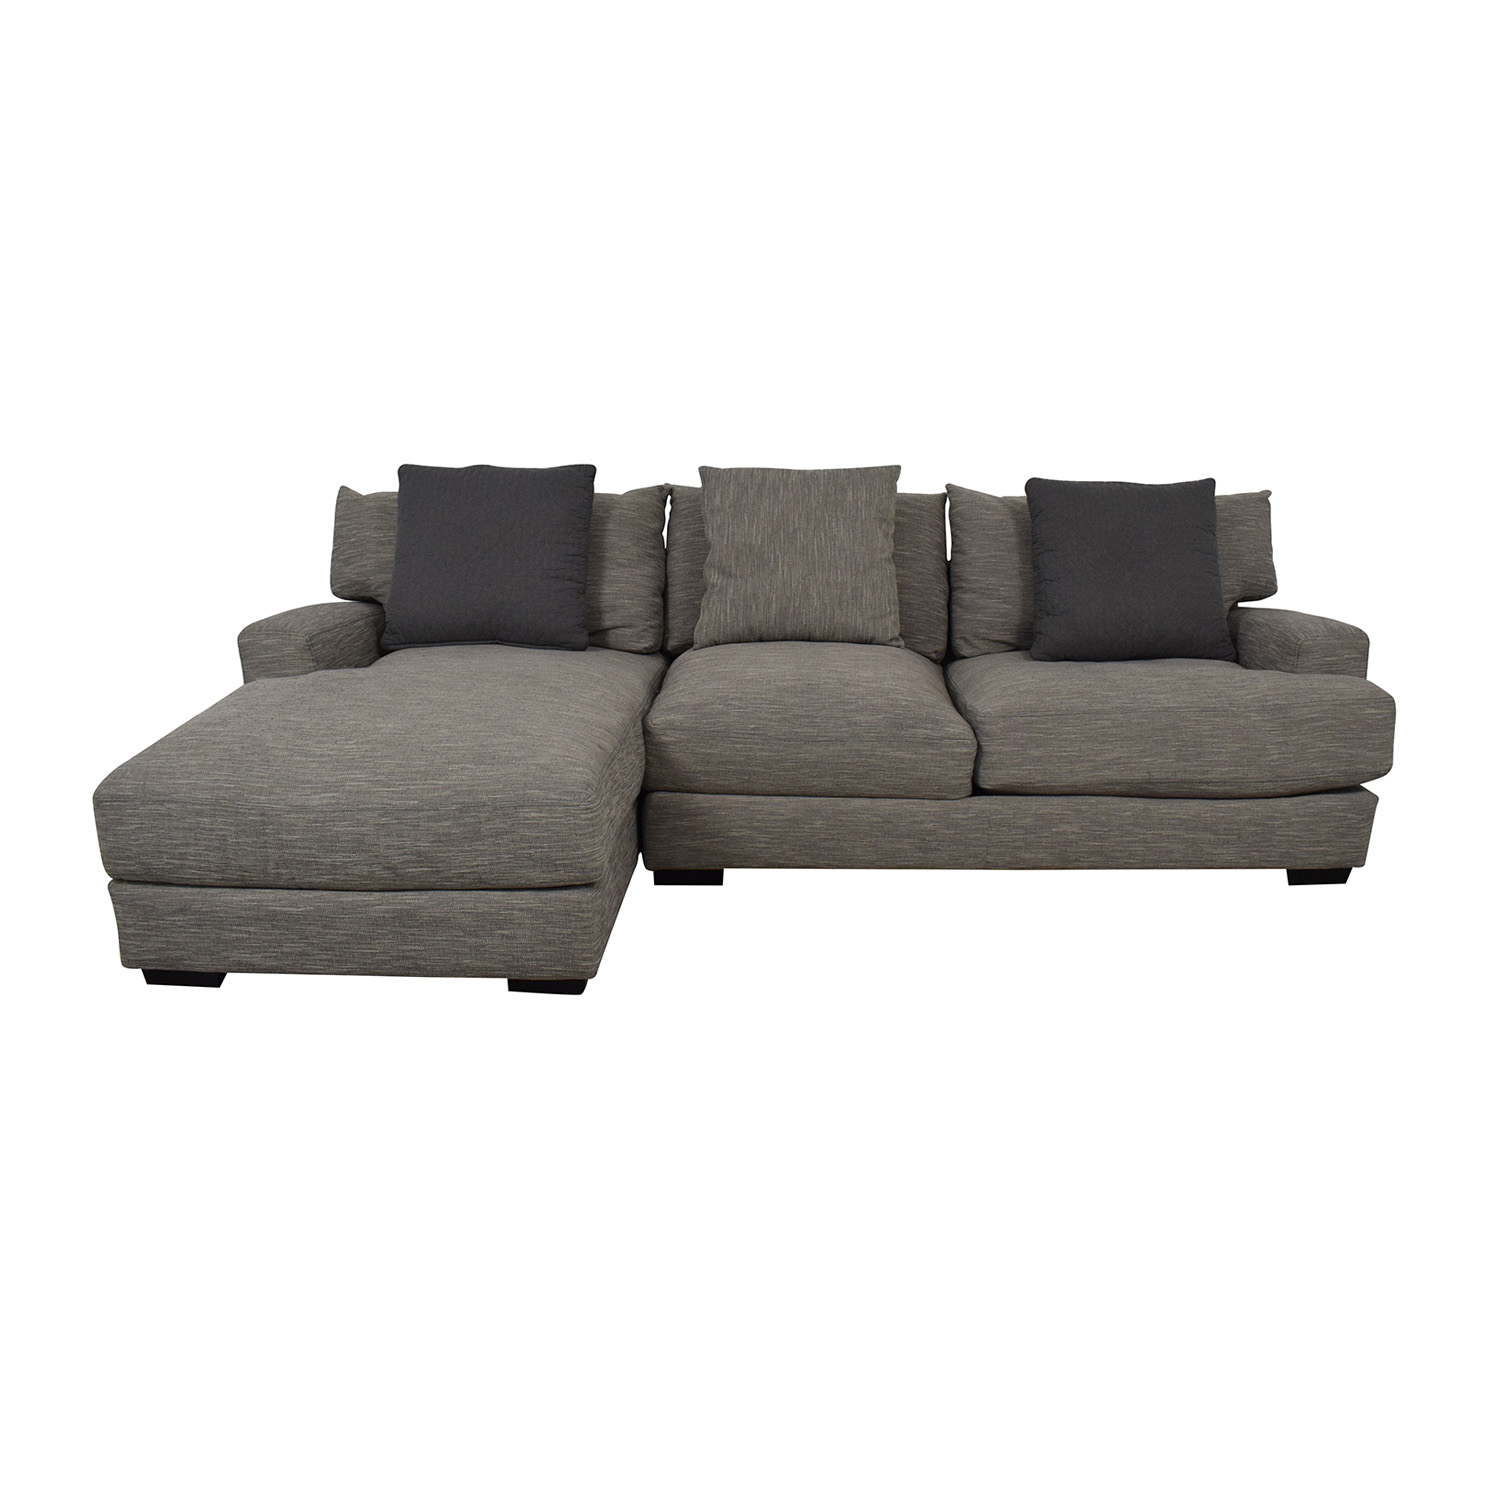 buy Raymour & Flanigan Leighton Two-Piece Sectional Sofa Raymour & Flanigan Sofas